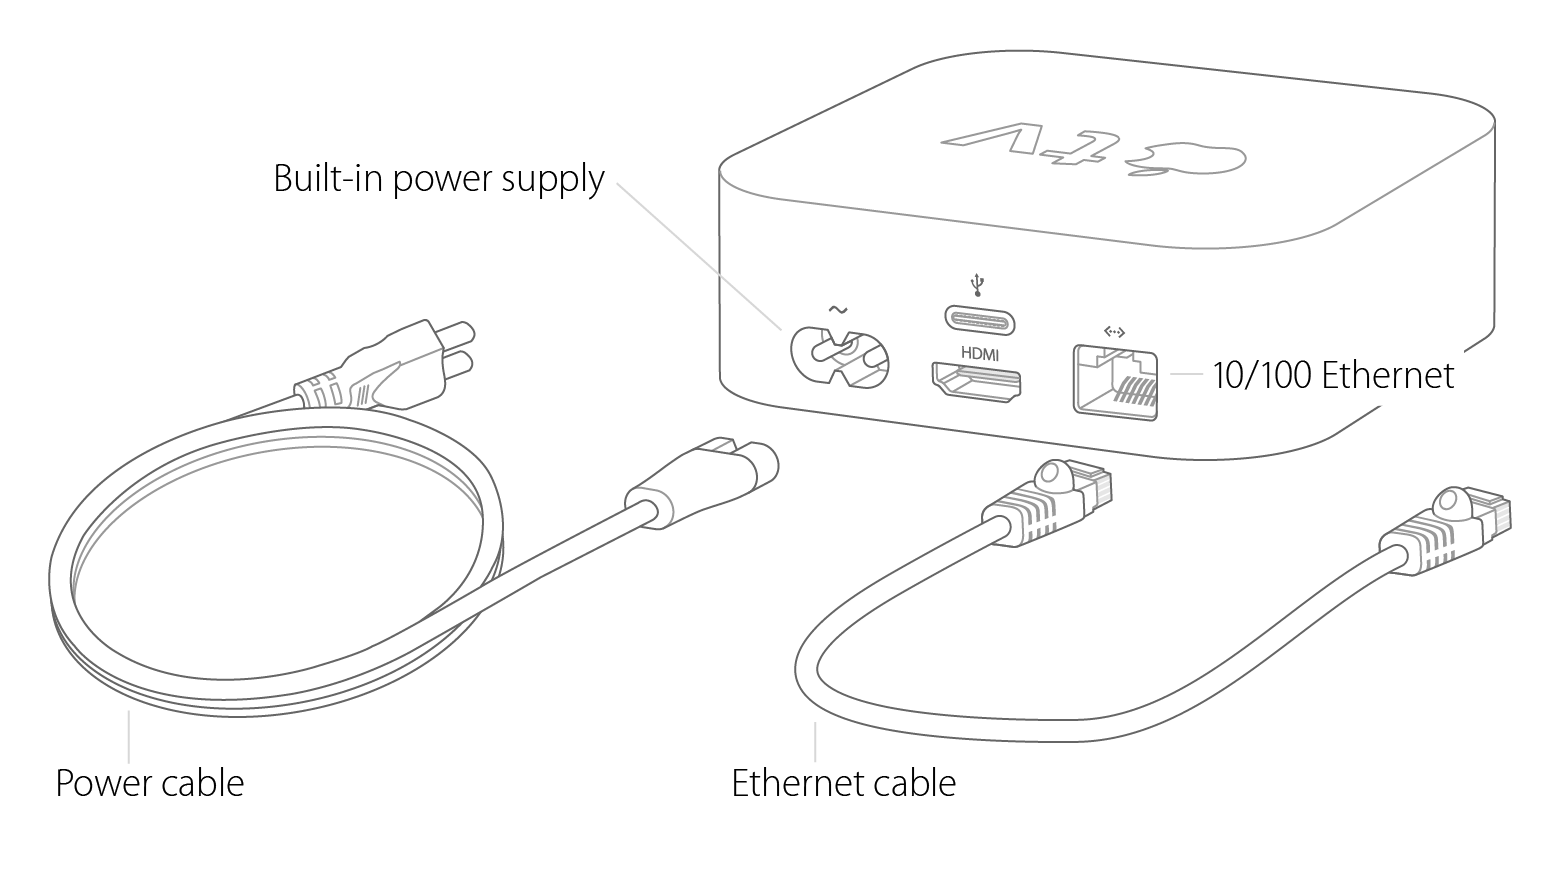 medium resolution of apple tv 4th generation with power cable and ethernet cable